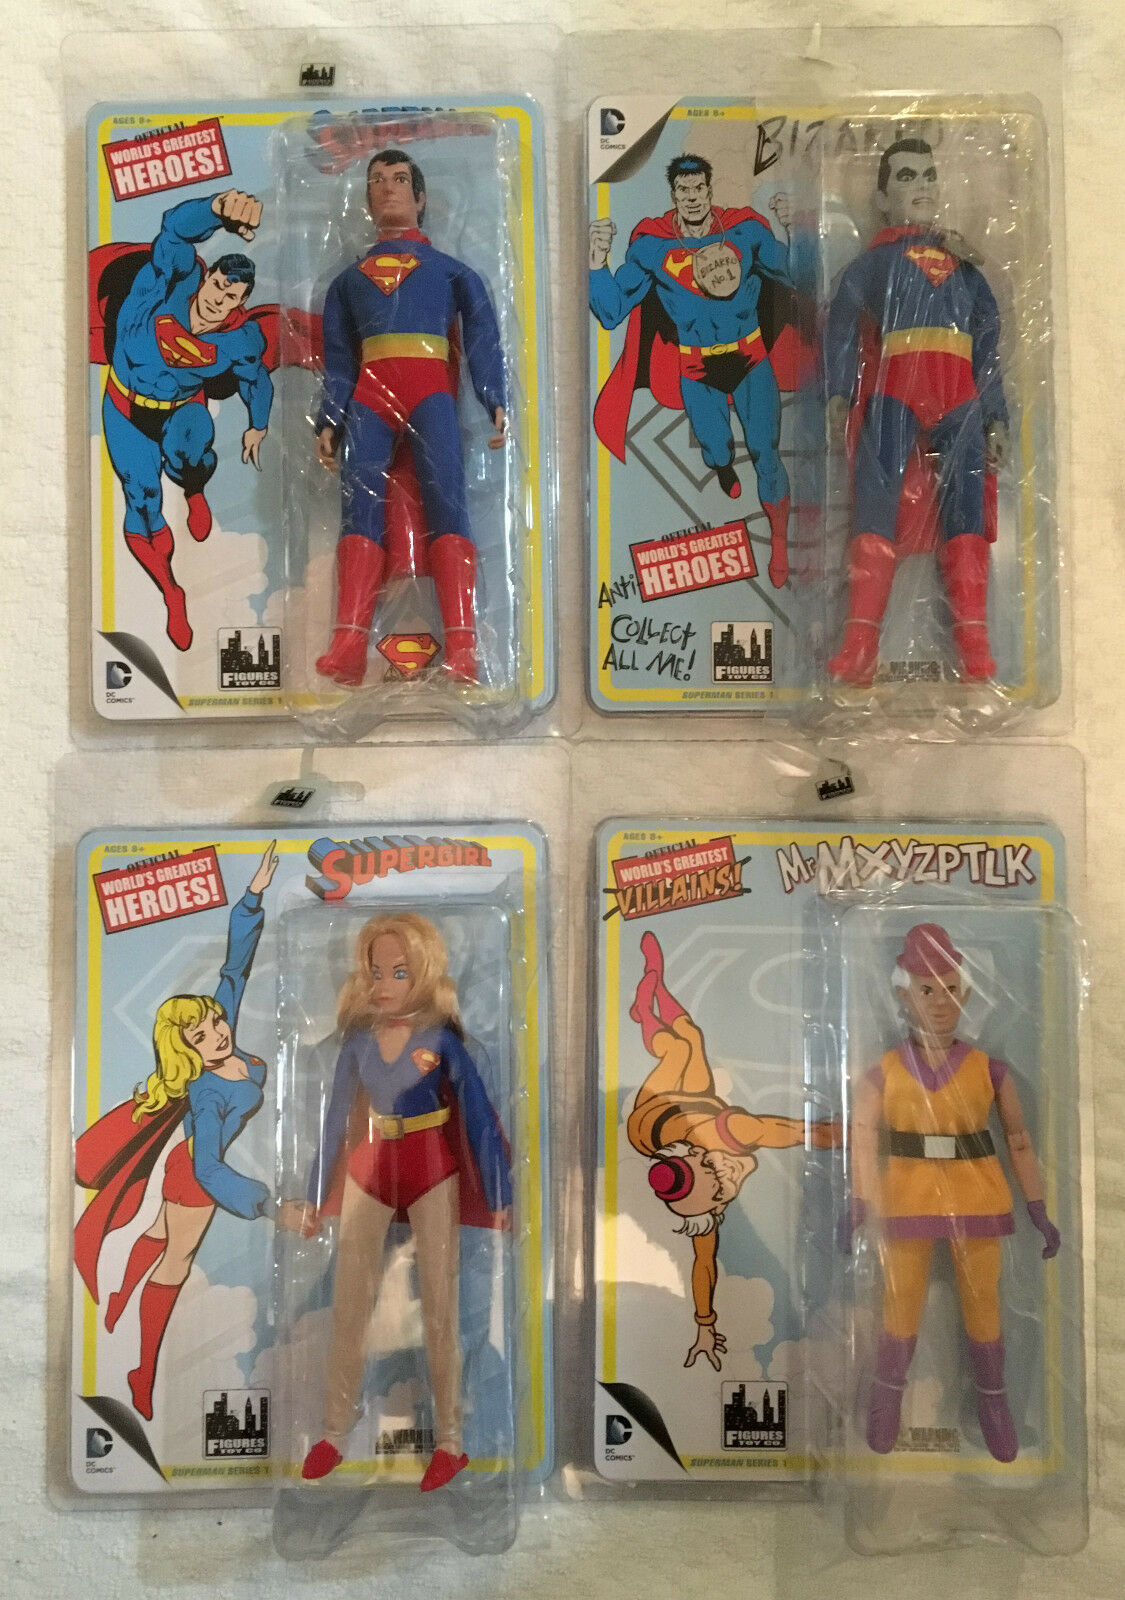 Series 1 World's Greatest Heroes Figures Toy Company Set of 4 Superman Supergirl